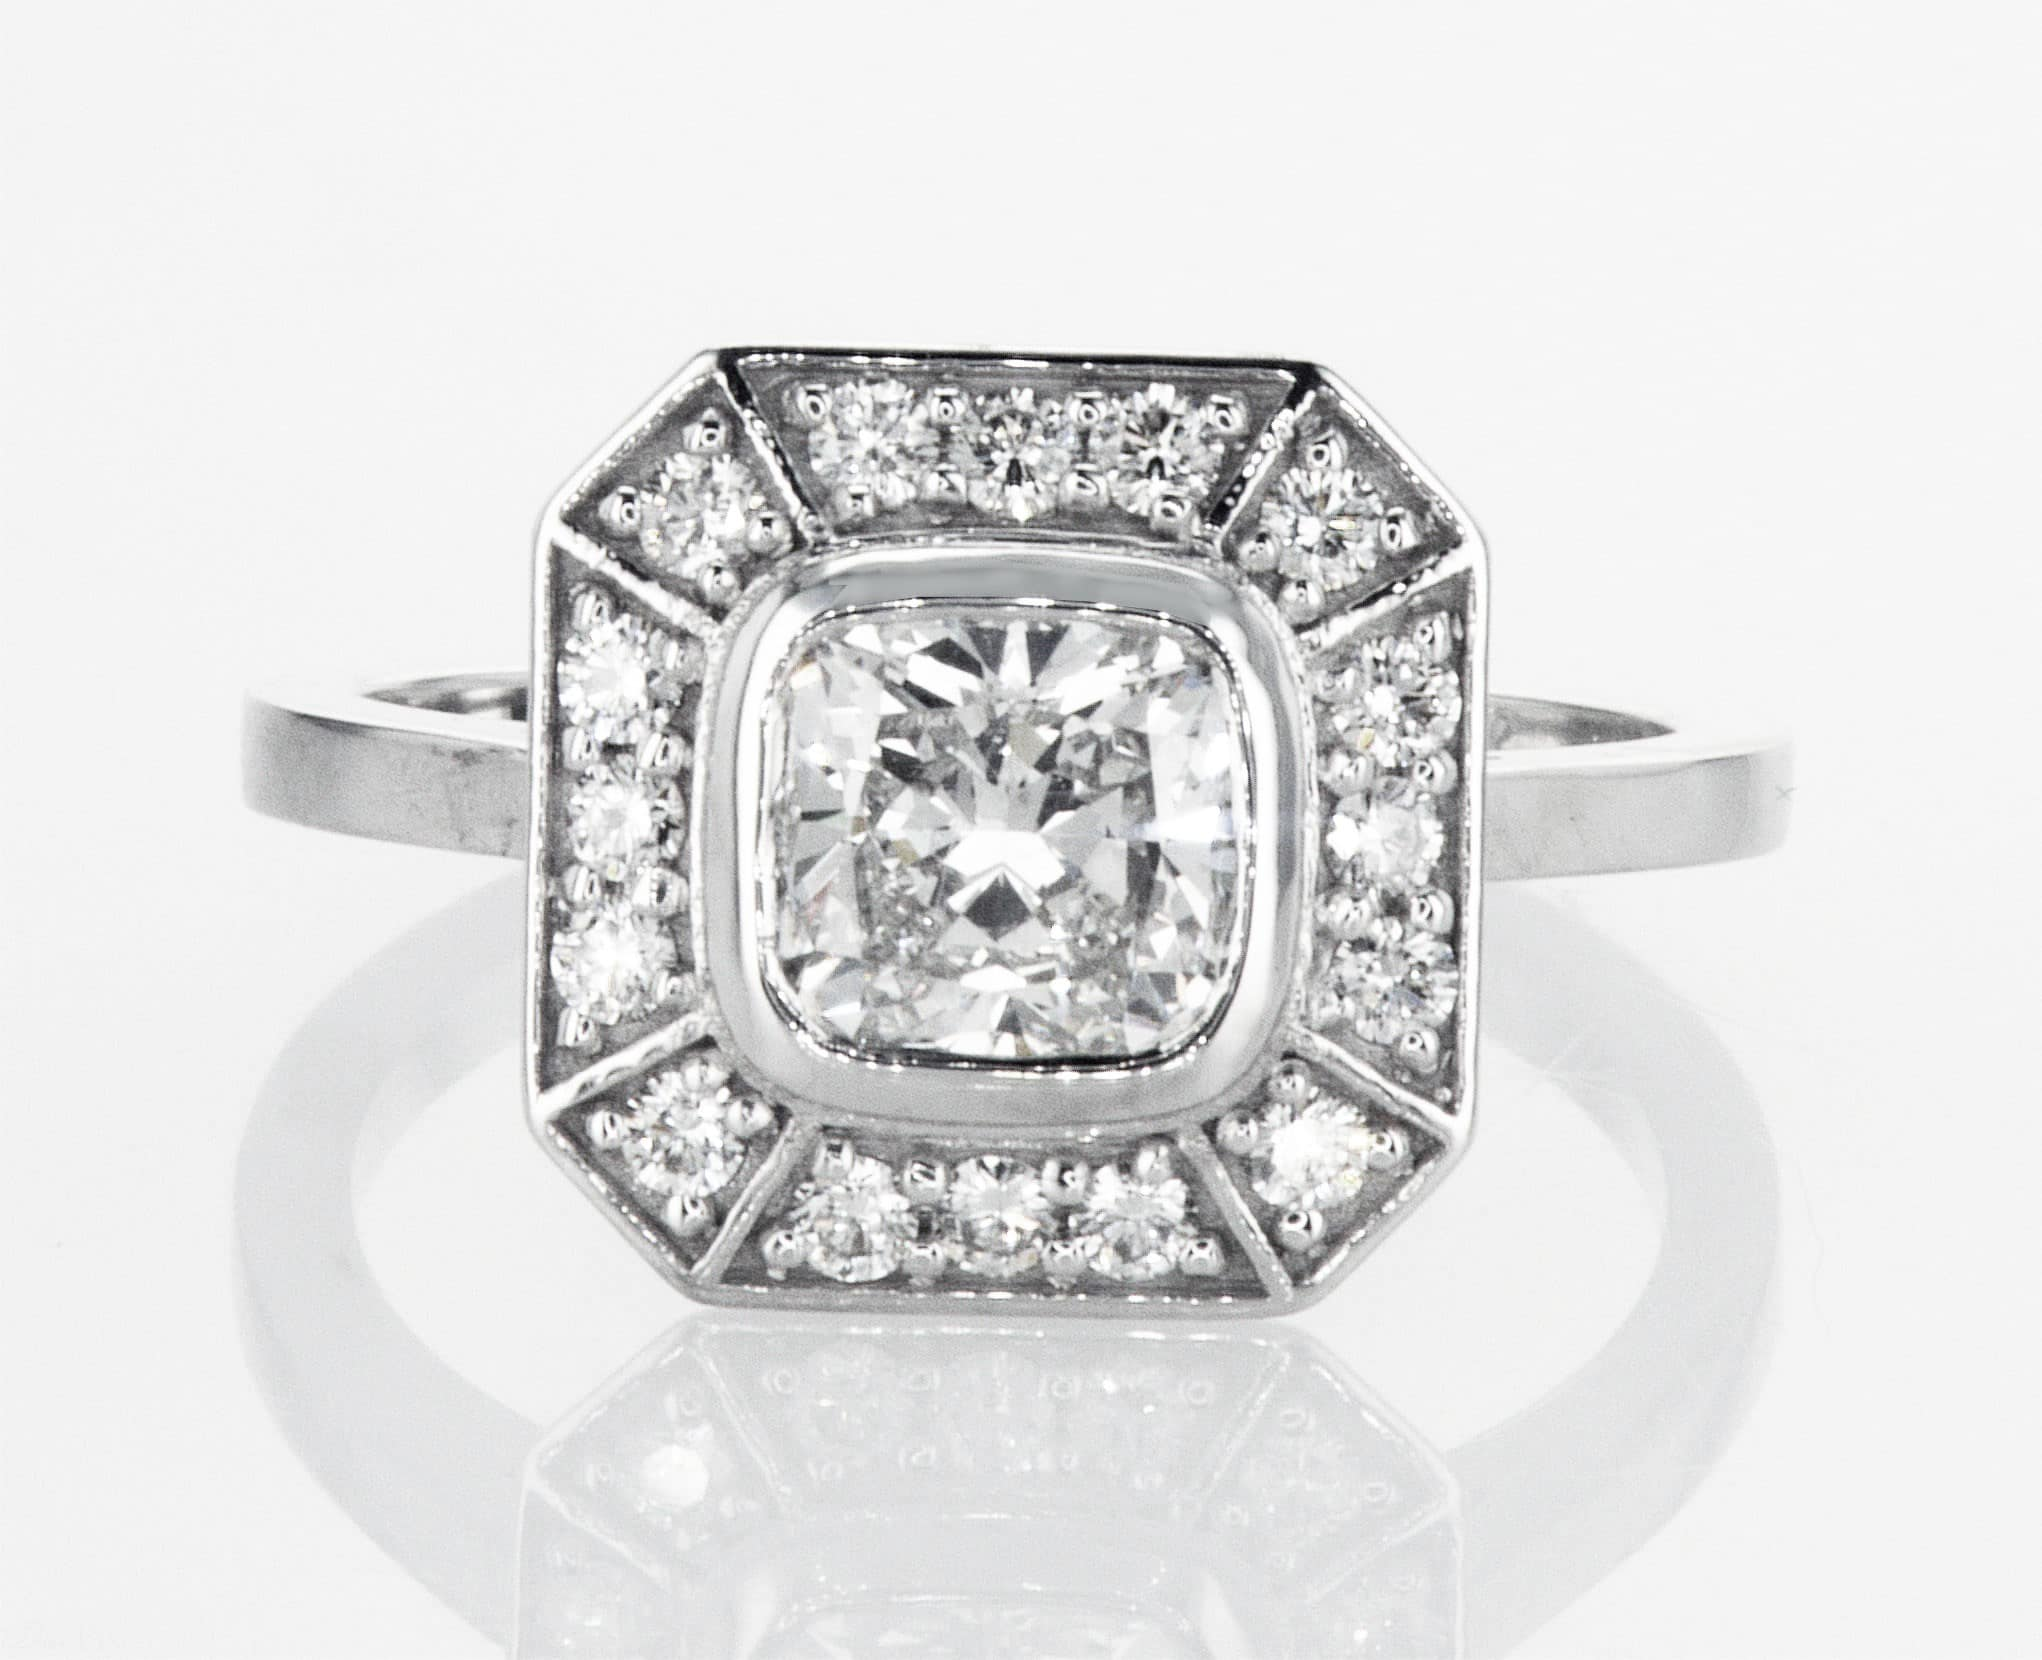 Diamond Ring Engagement Tips Article Image 2